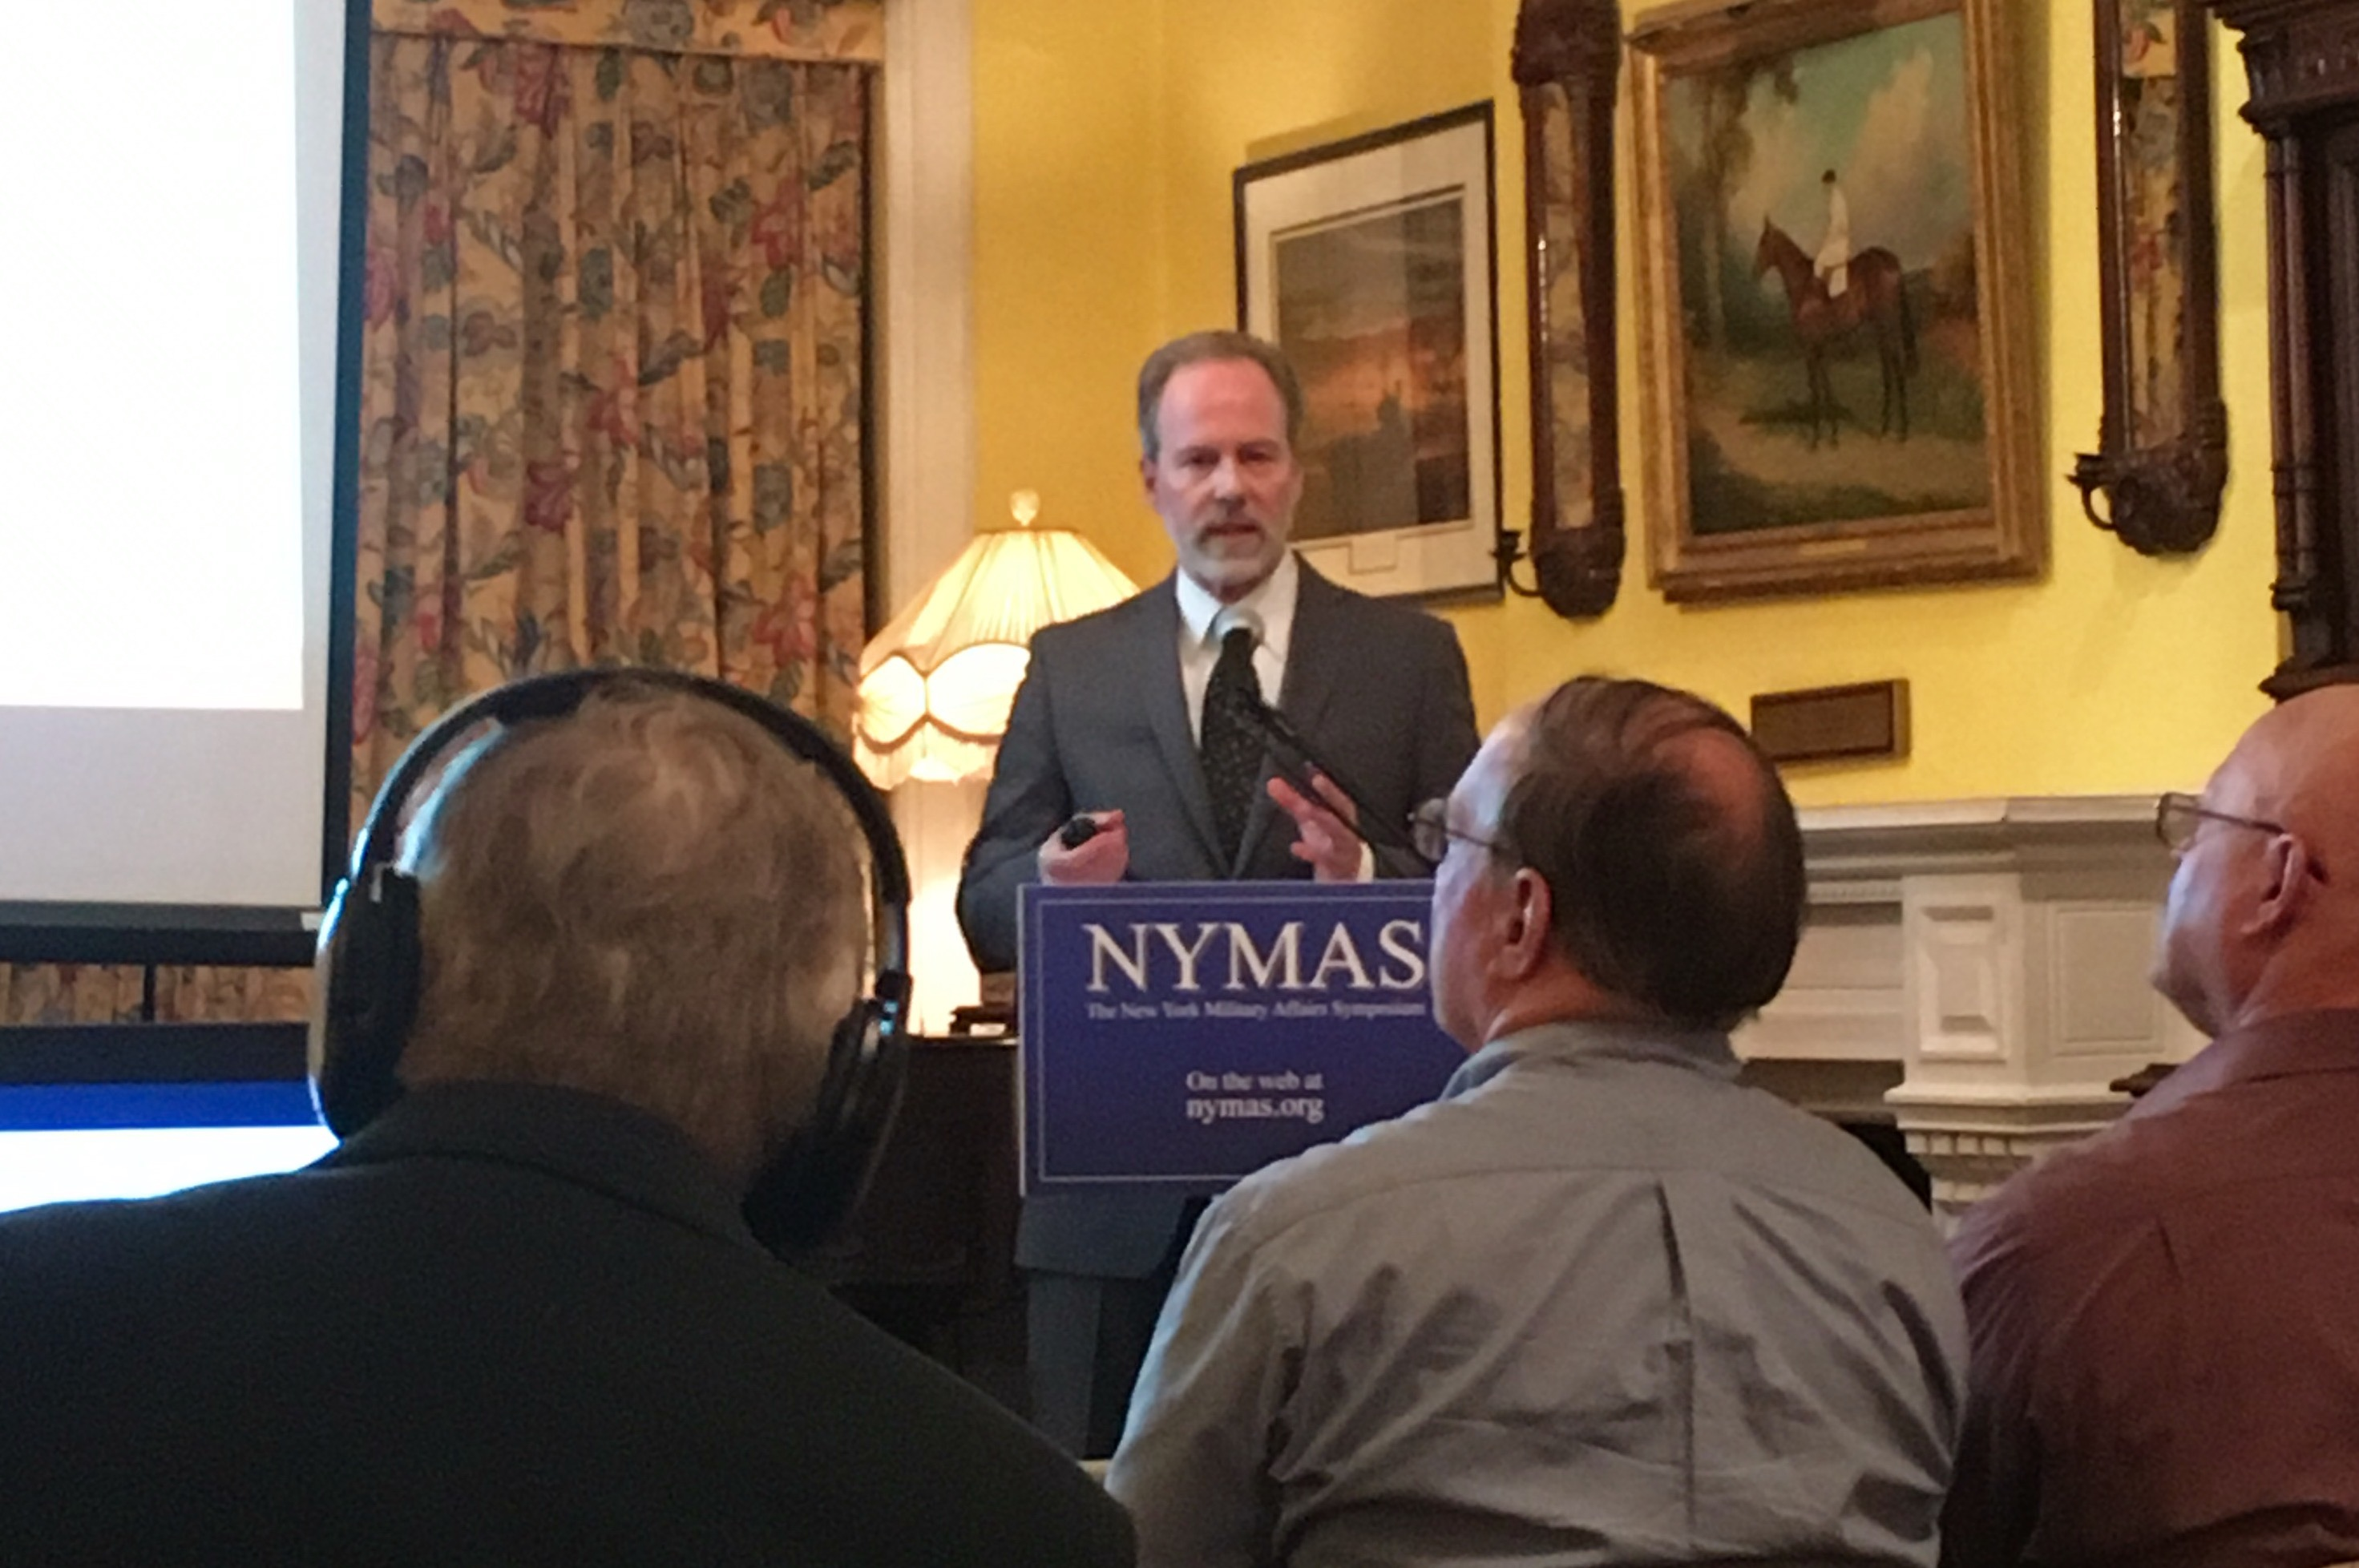 Eric F. Frazier speaks at the New York Military Affairs Symposium May 5, 2017. The videotaped talk is available for viewing on C-SPAN.